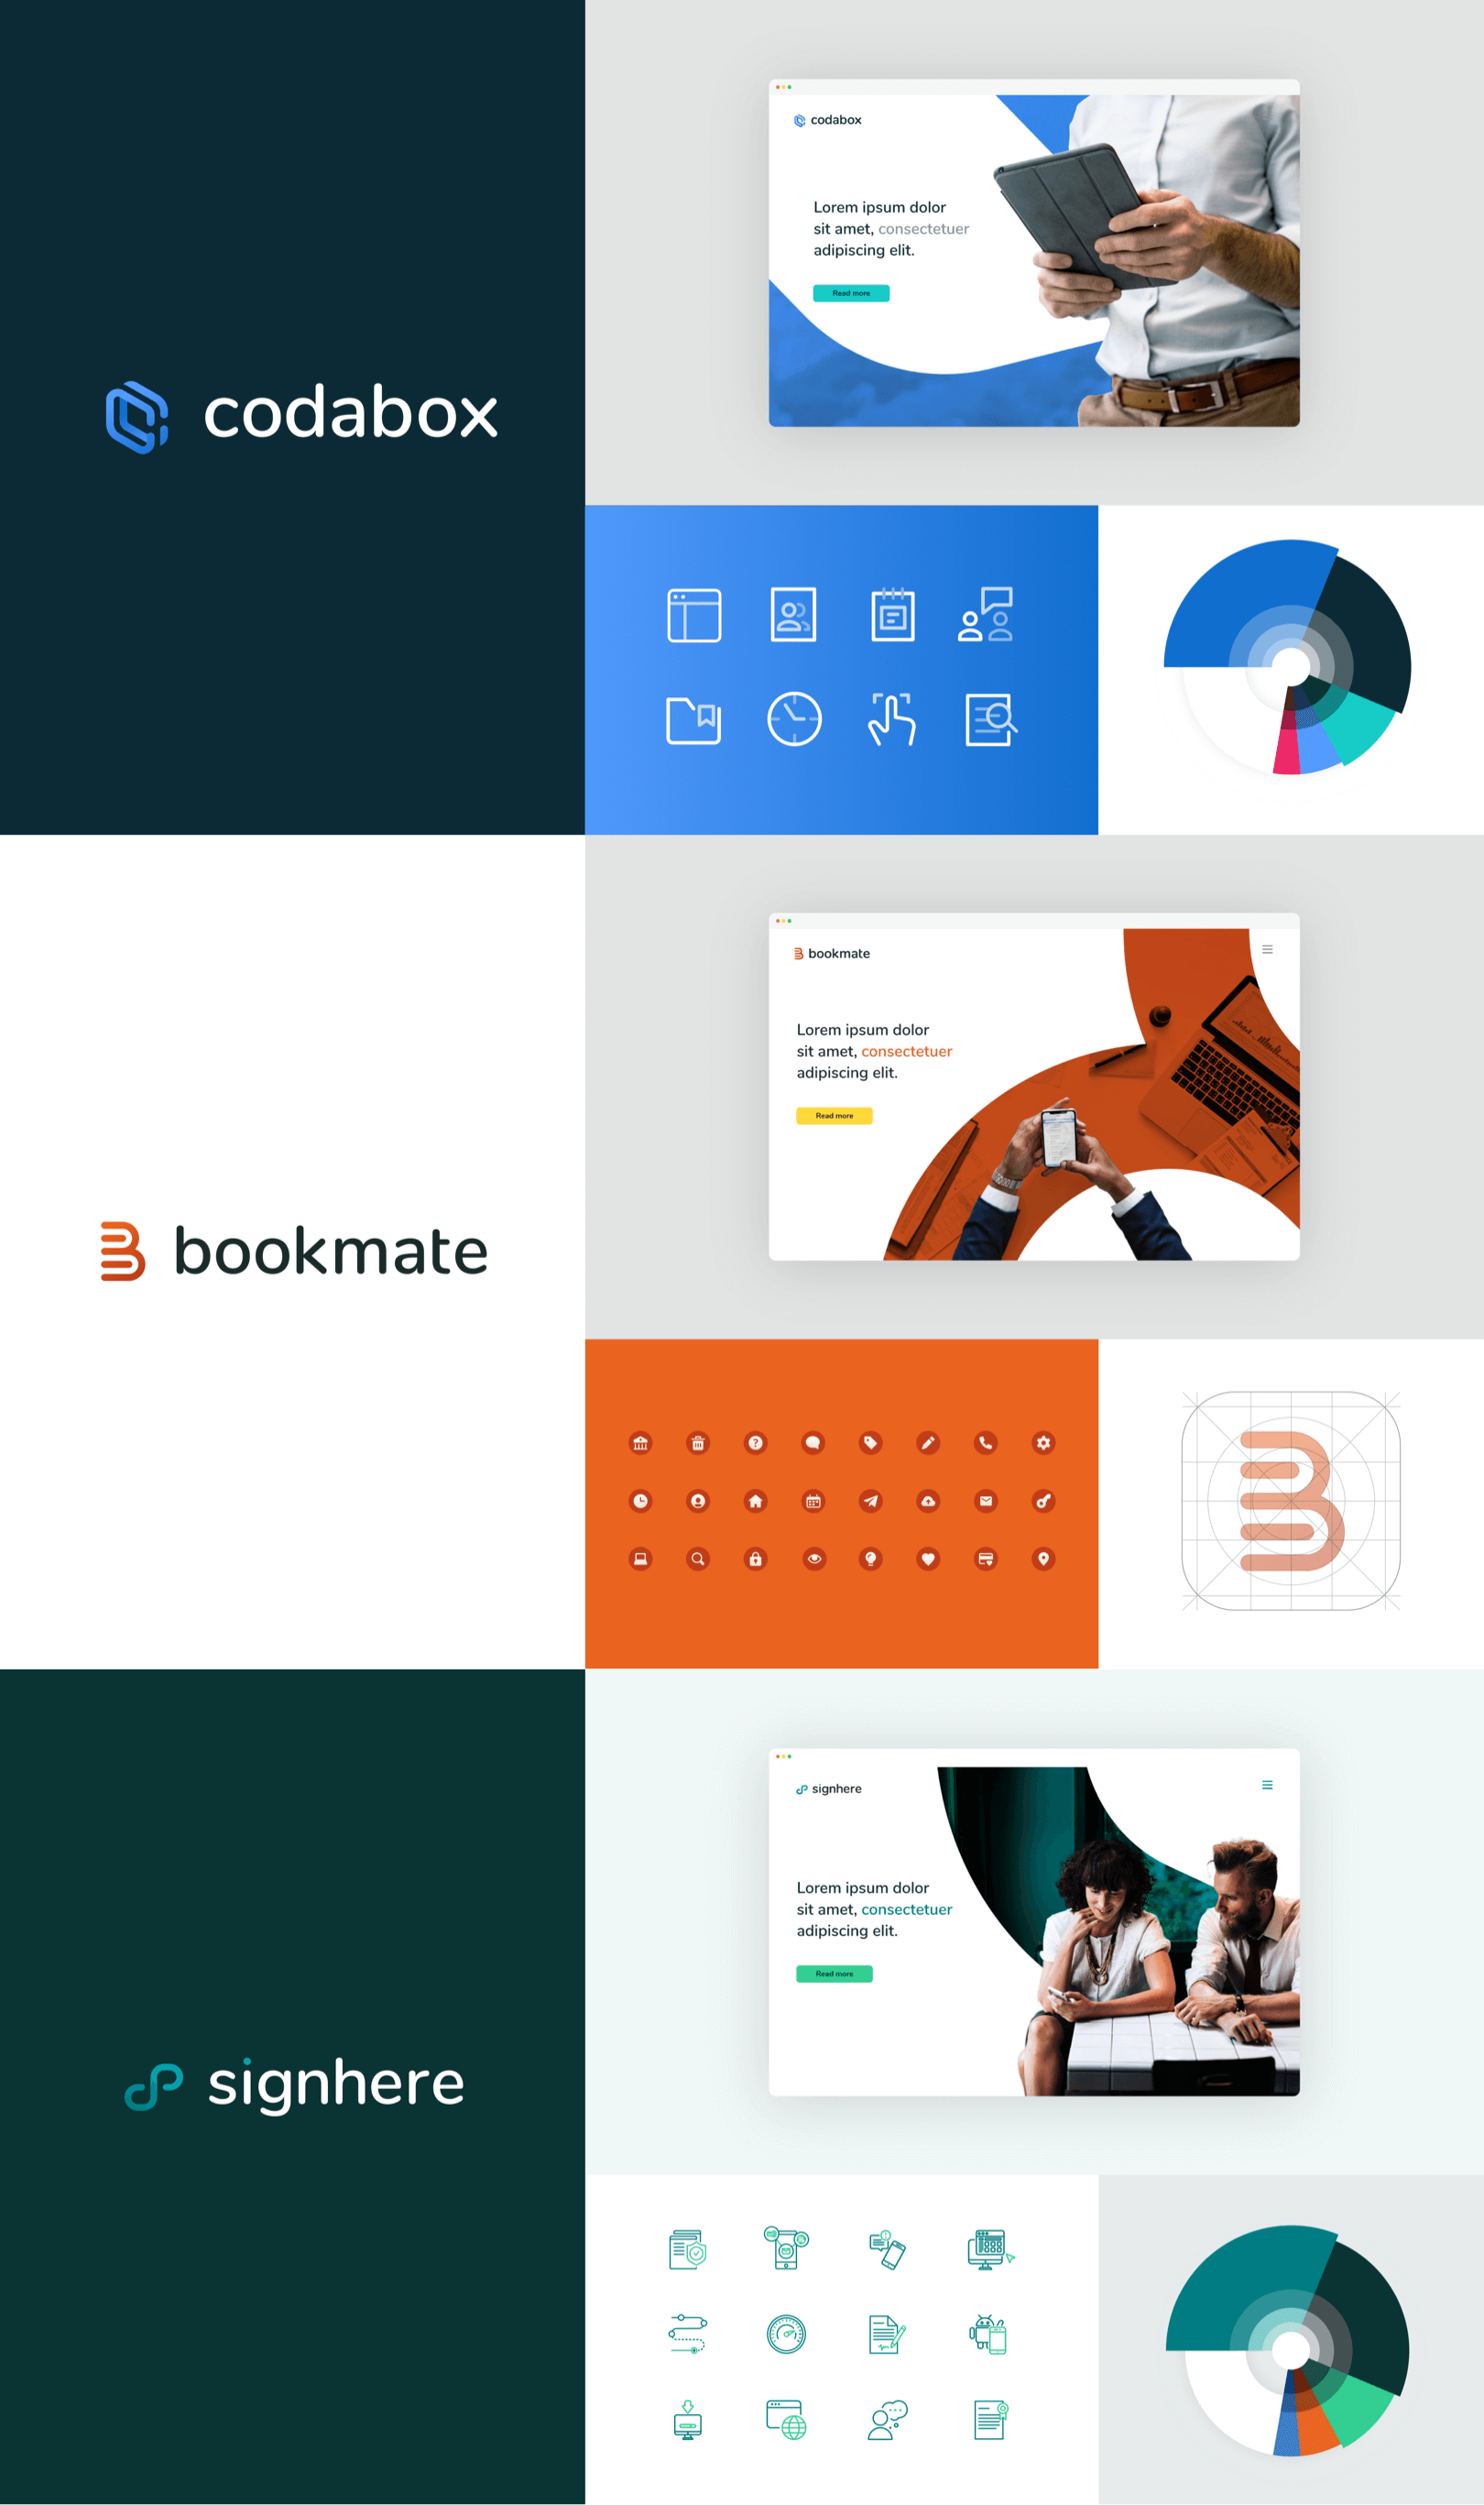 Overview of the rebranding done for Codabox, Bookmate and signhere. Showing a landingpage, icons and colours